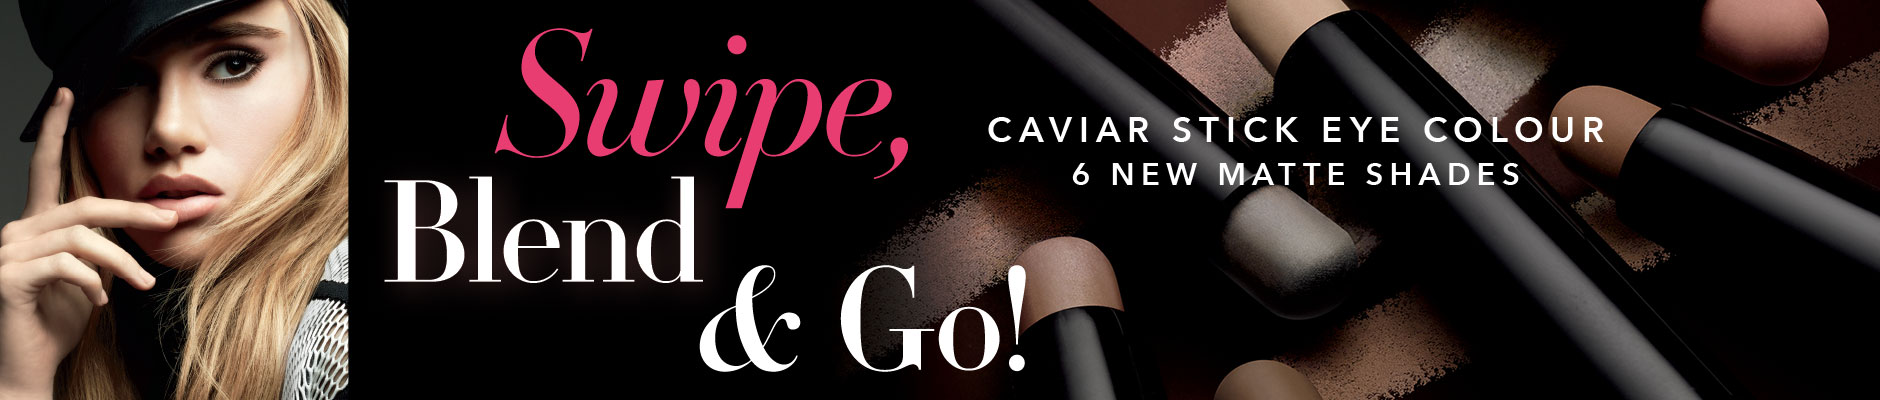 Swipe, Blend & Go! Caviar stick eye colour - 6 new matte shades